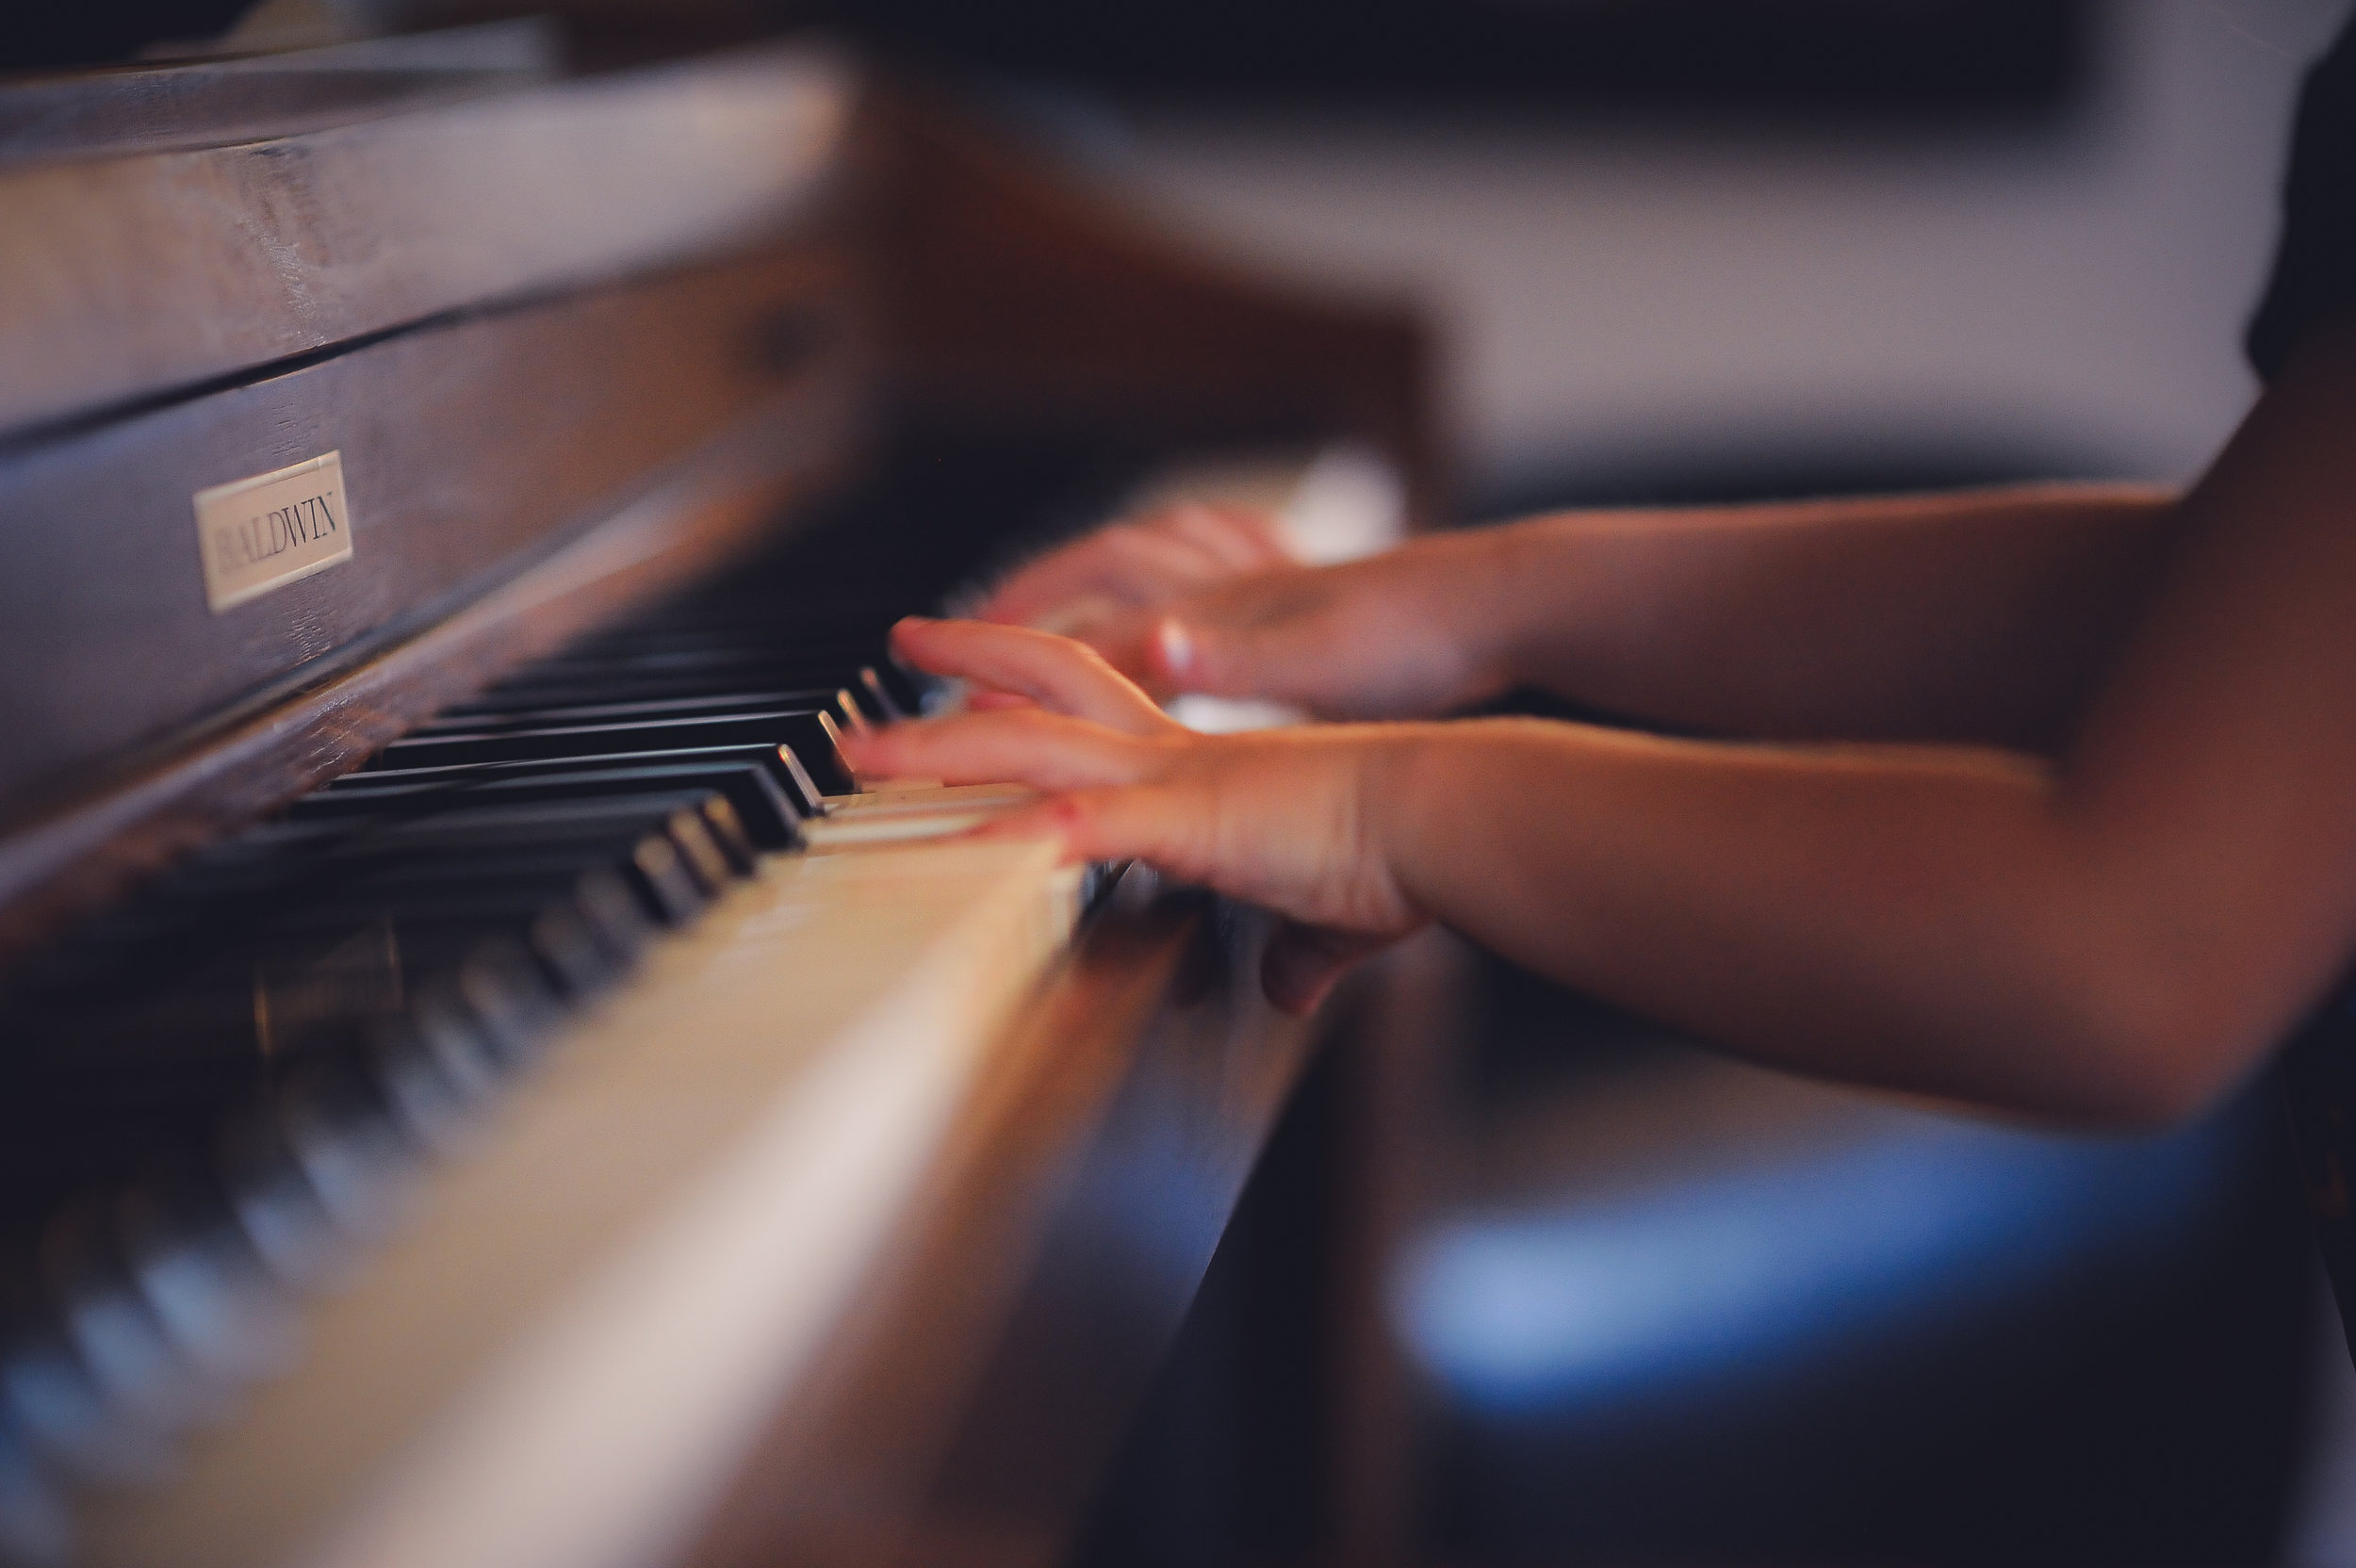 Let Us Help - We'll select a piano teacher for you, based on your needs and interests.